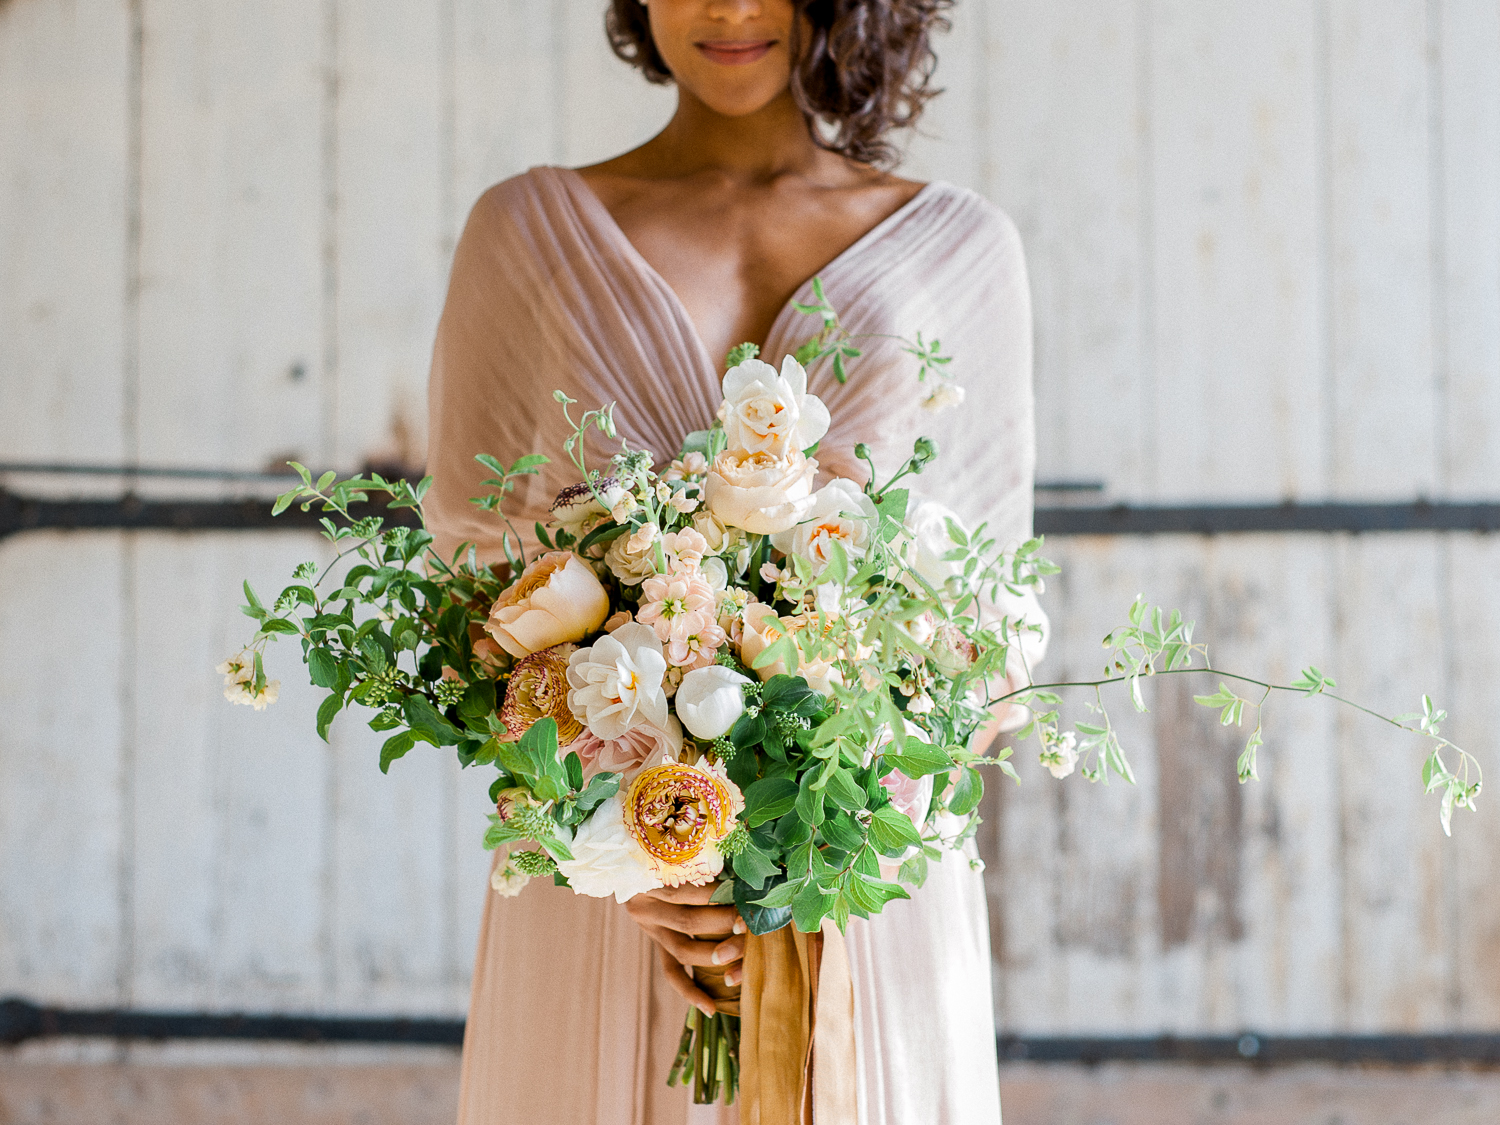 Beautiful wedding bouquet with silk ribbons by Laetitia Fleurs d'atelier